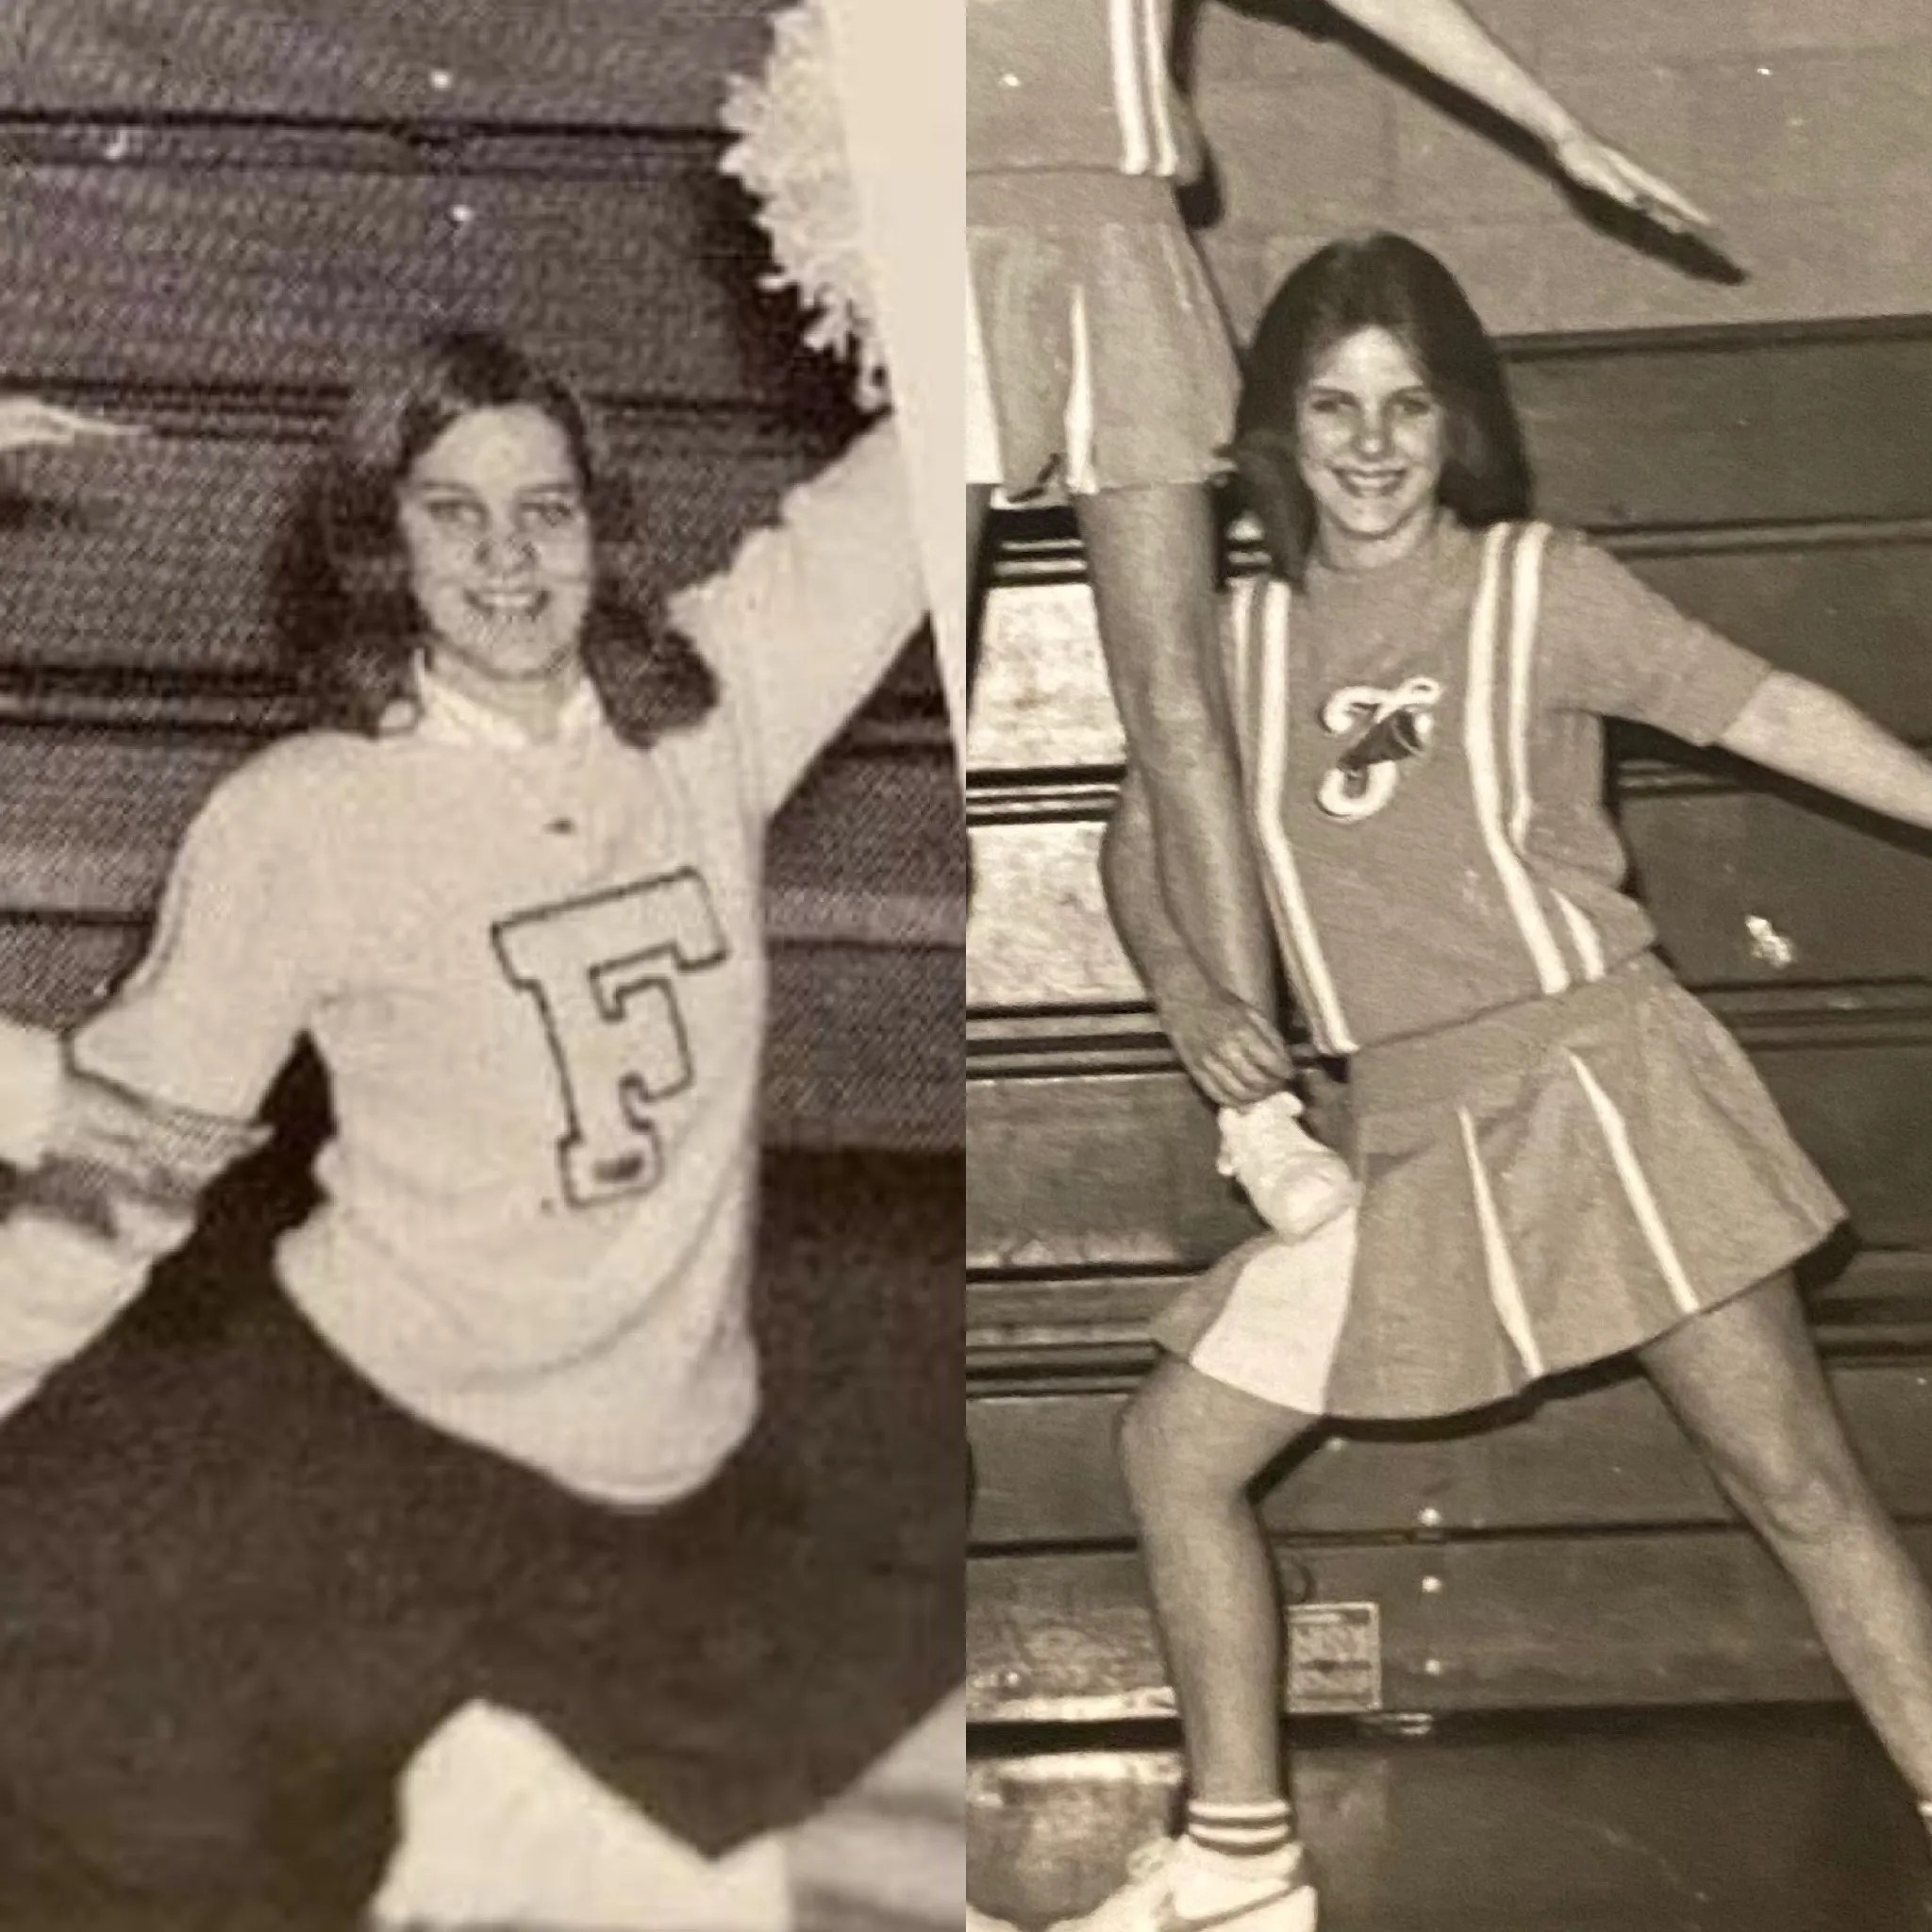 Donna Cougill (left) and her daughter Laura Mabry around the same age.  Donna was a cheerleader at Franklin Central and Laura was a maid for the same school's wrestling team.